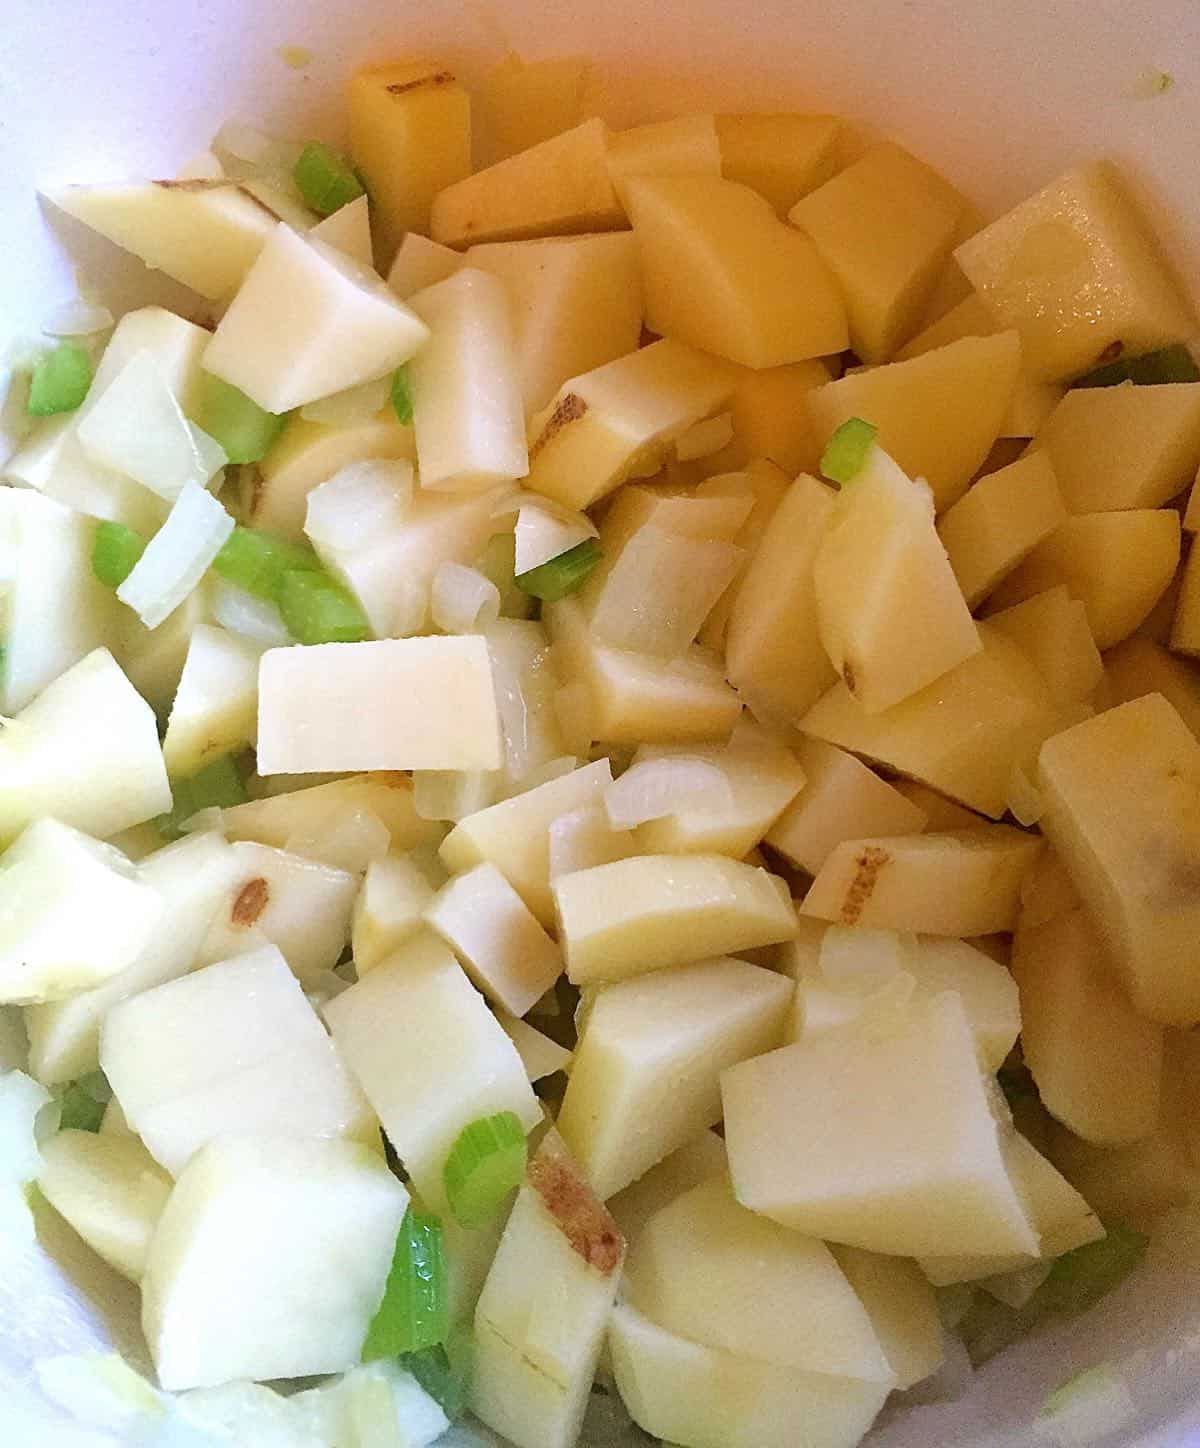 A saucepan with cut-up potatoes and celery.